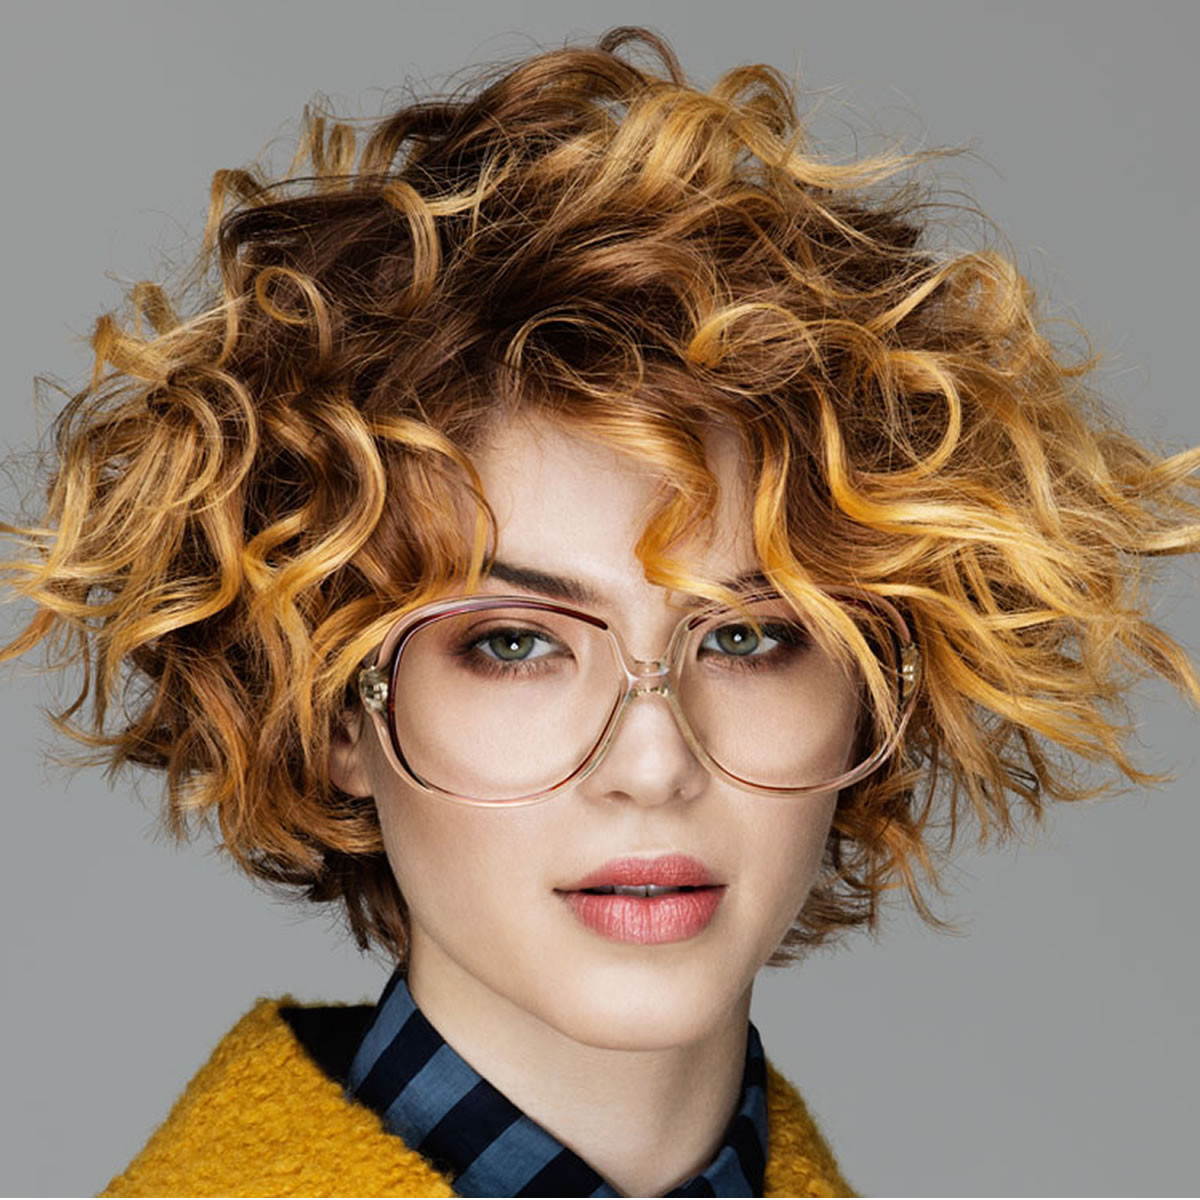 33+ Most Stylish Short Curly Hairstyles & Haircuts For Women Intended For Trendy Short Curly Haircuts (View 6 of 25)